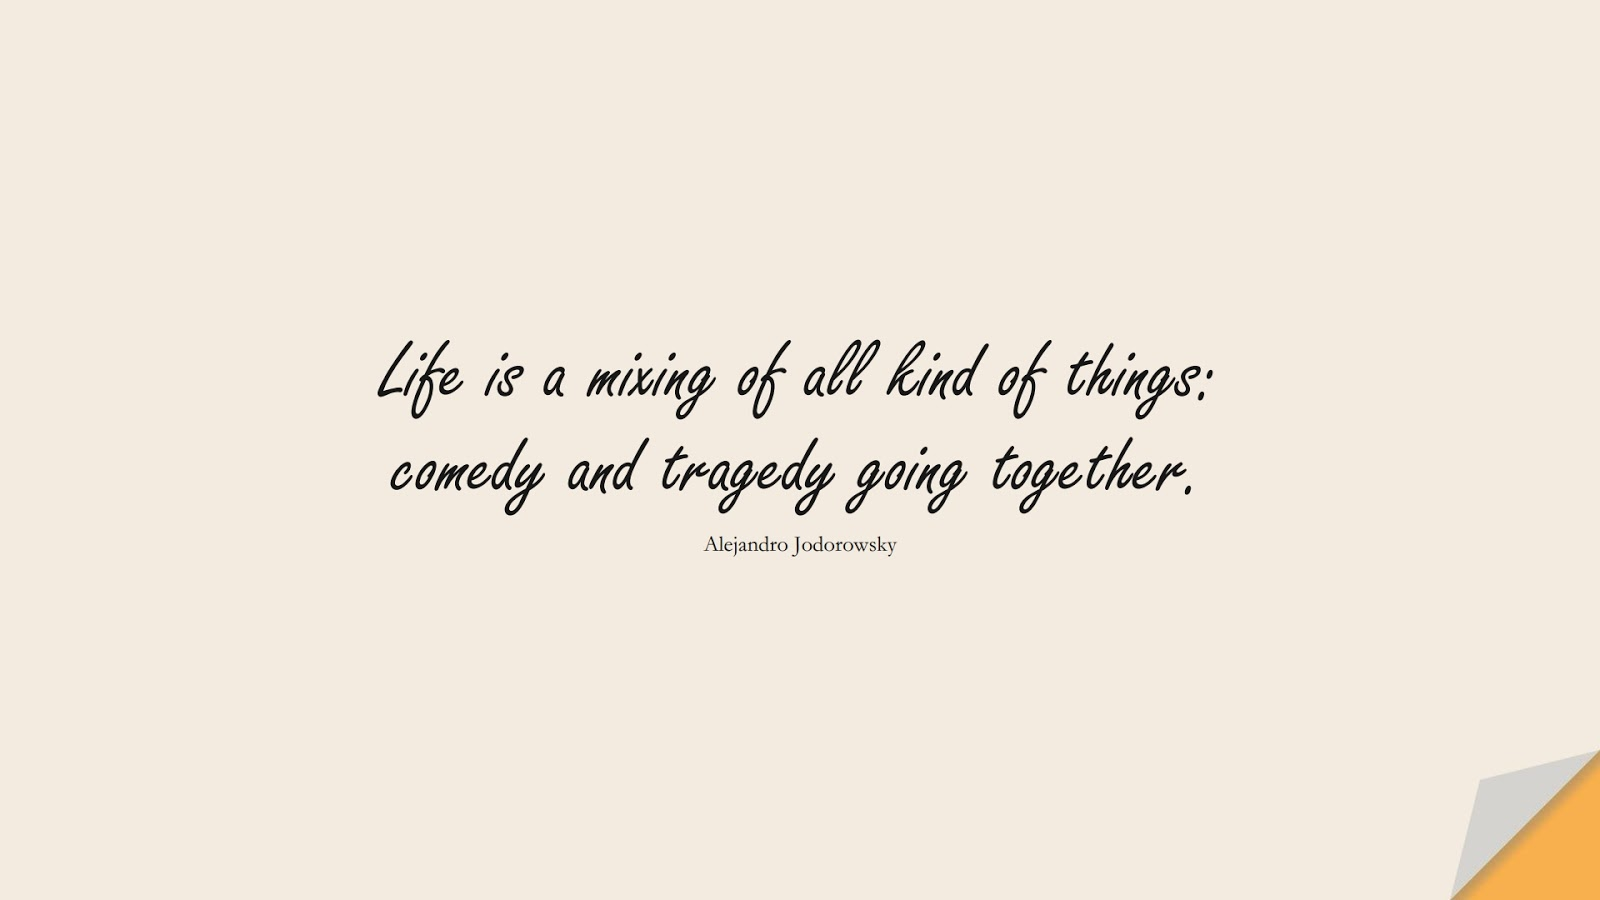 Life is a mixing of all kind of things: comedy and tragedy going together. (Alejandro Jodorowsky);  #LifeQuotes